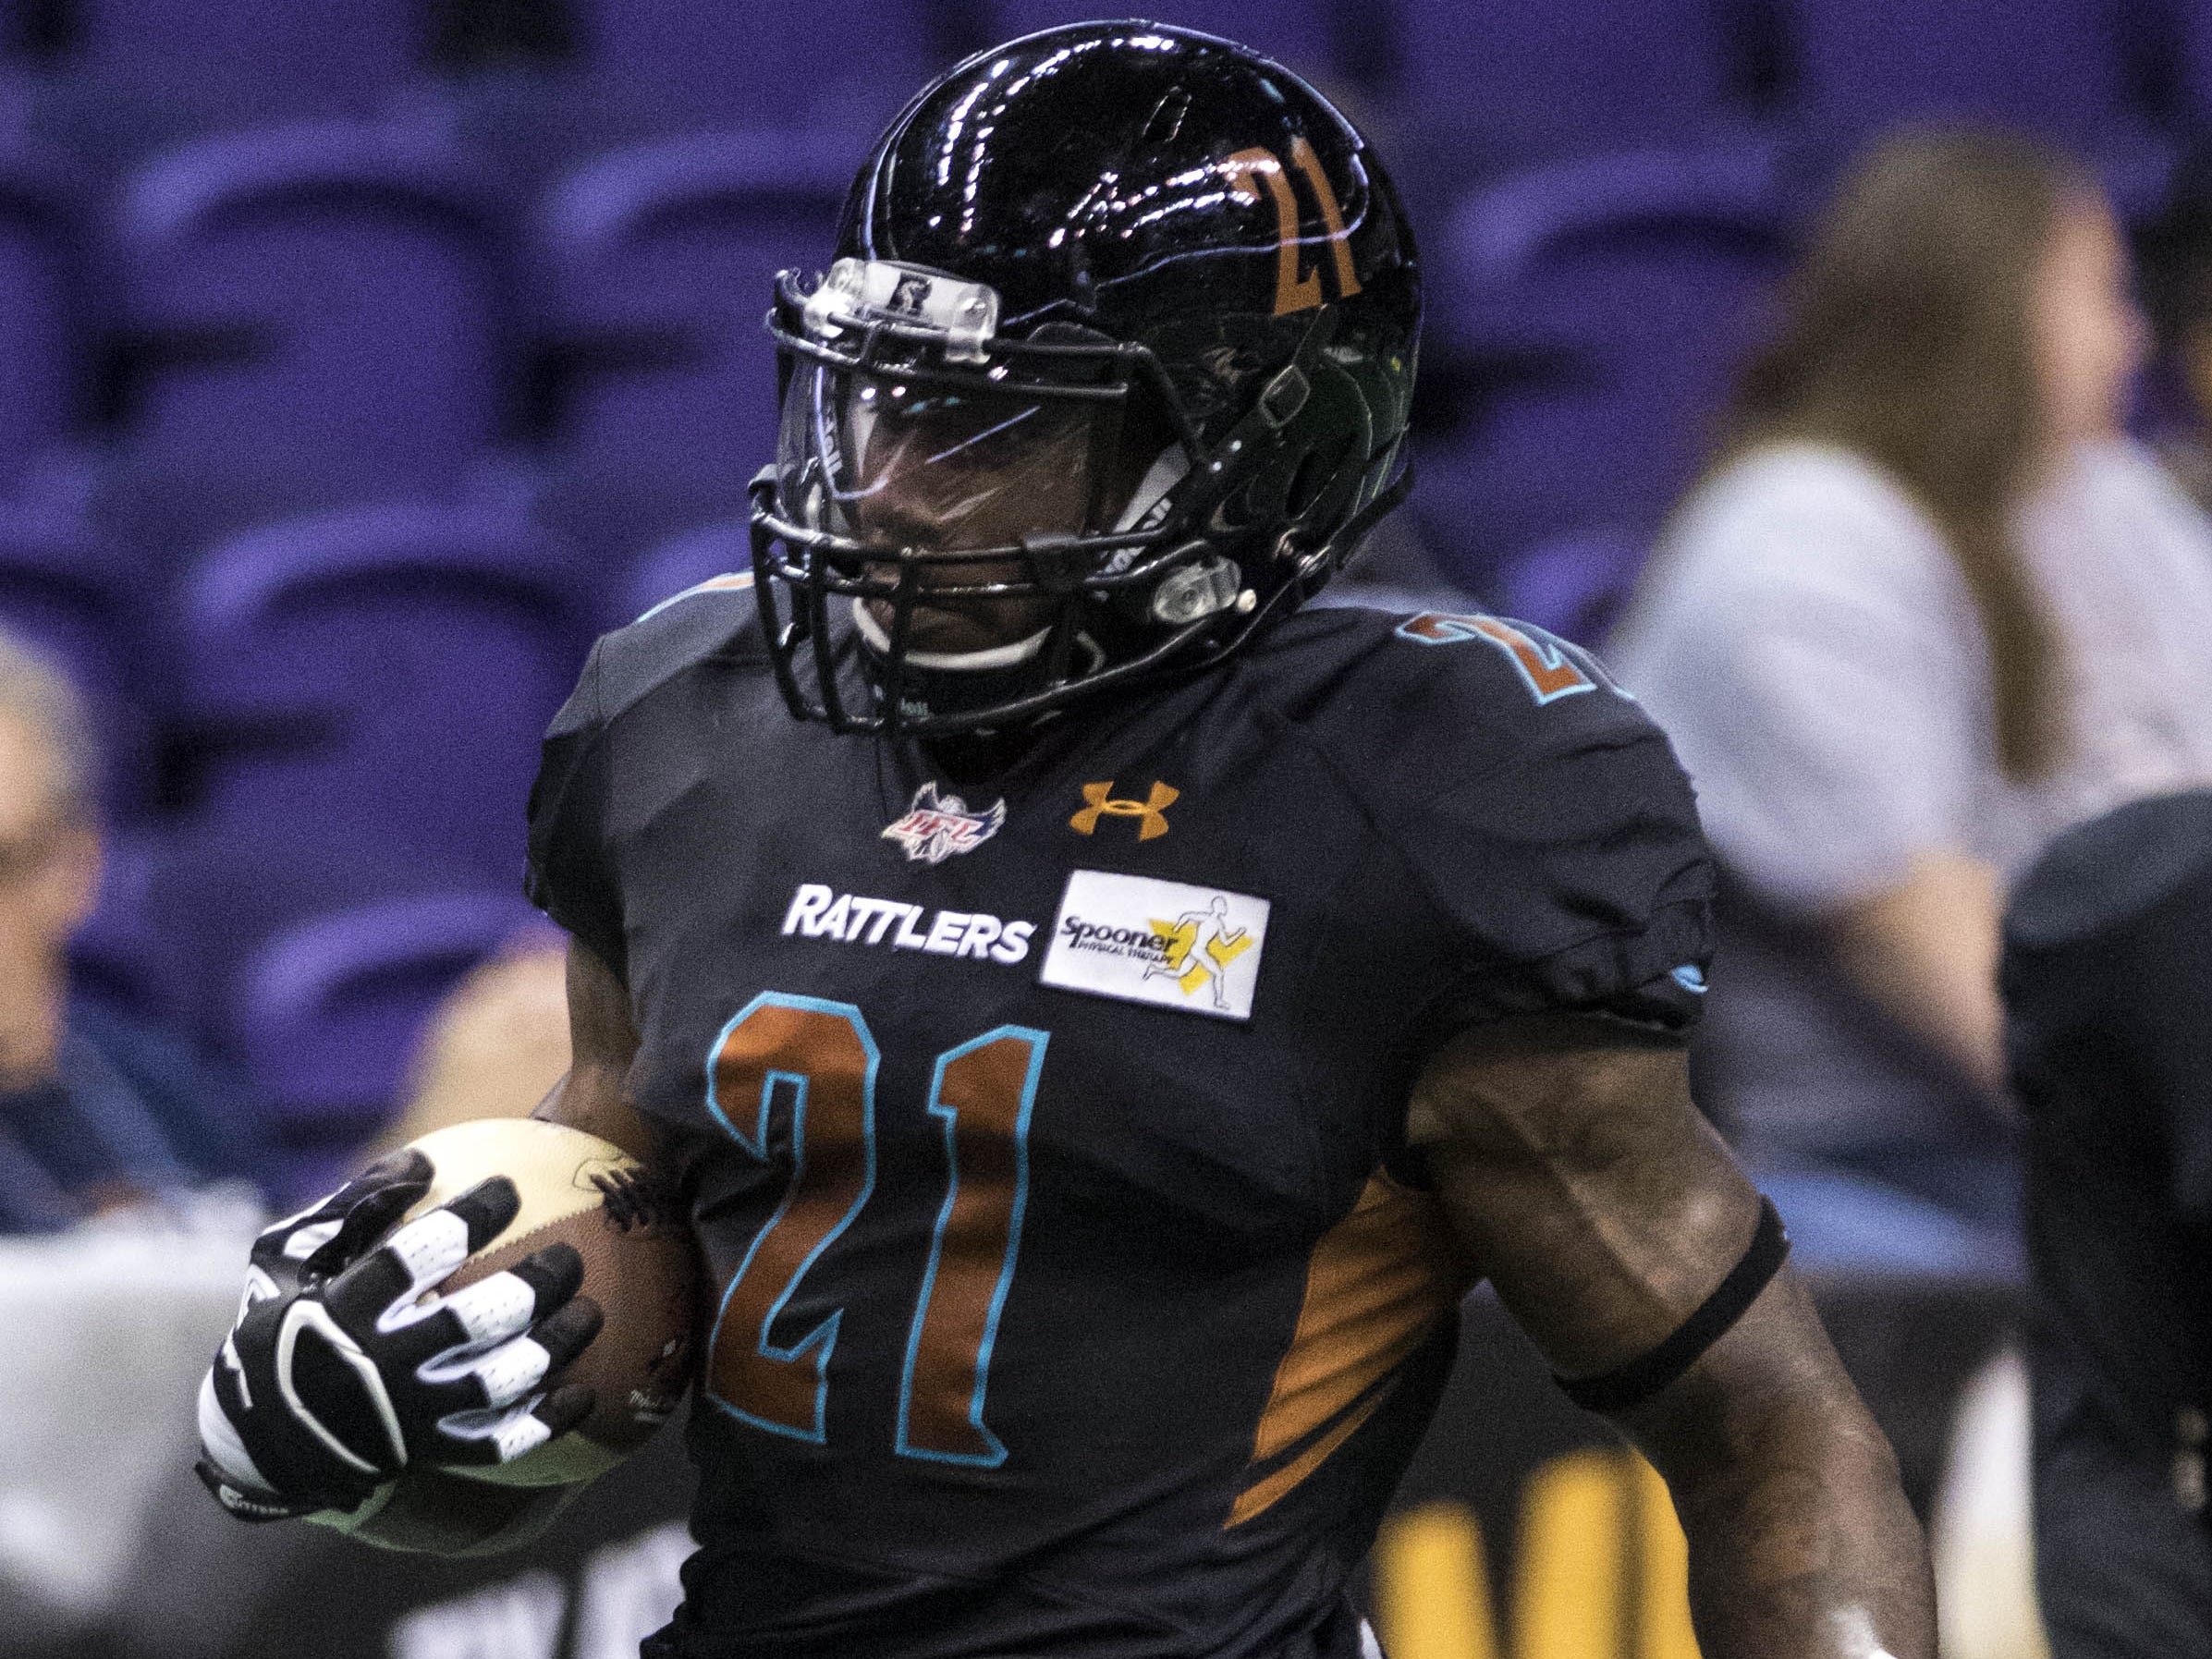 Arizona Rattlers' Jabre Lolley (21) carries the ball during warmups before their game with Cedar Rapids River Kings at Talking Stick Resort Arena in Phoenix, Sunday, March 3, 2019.